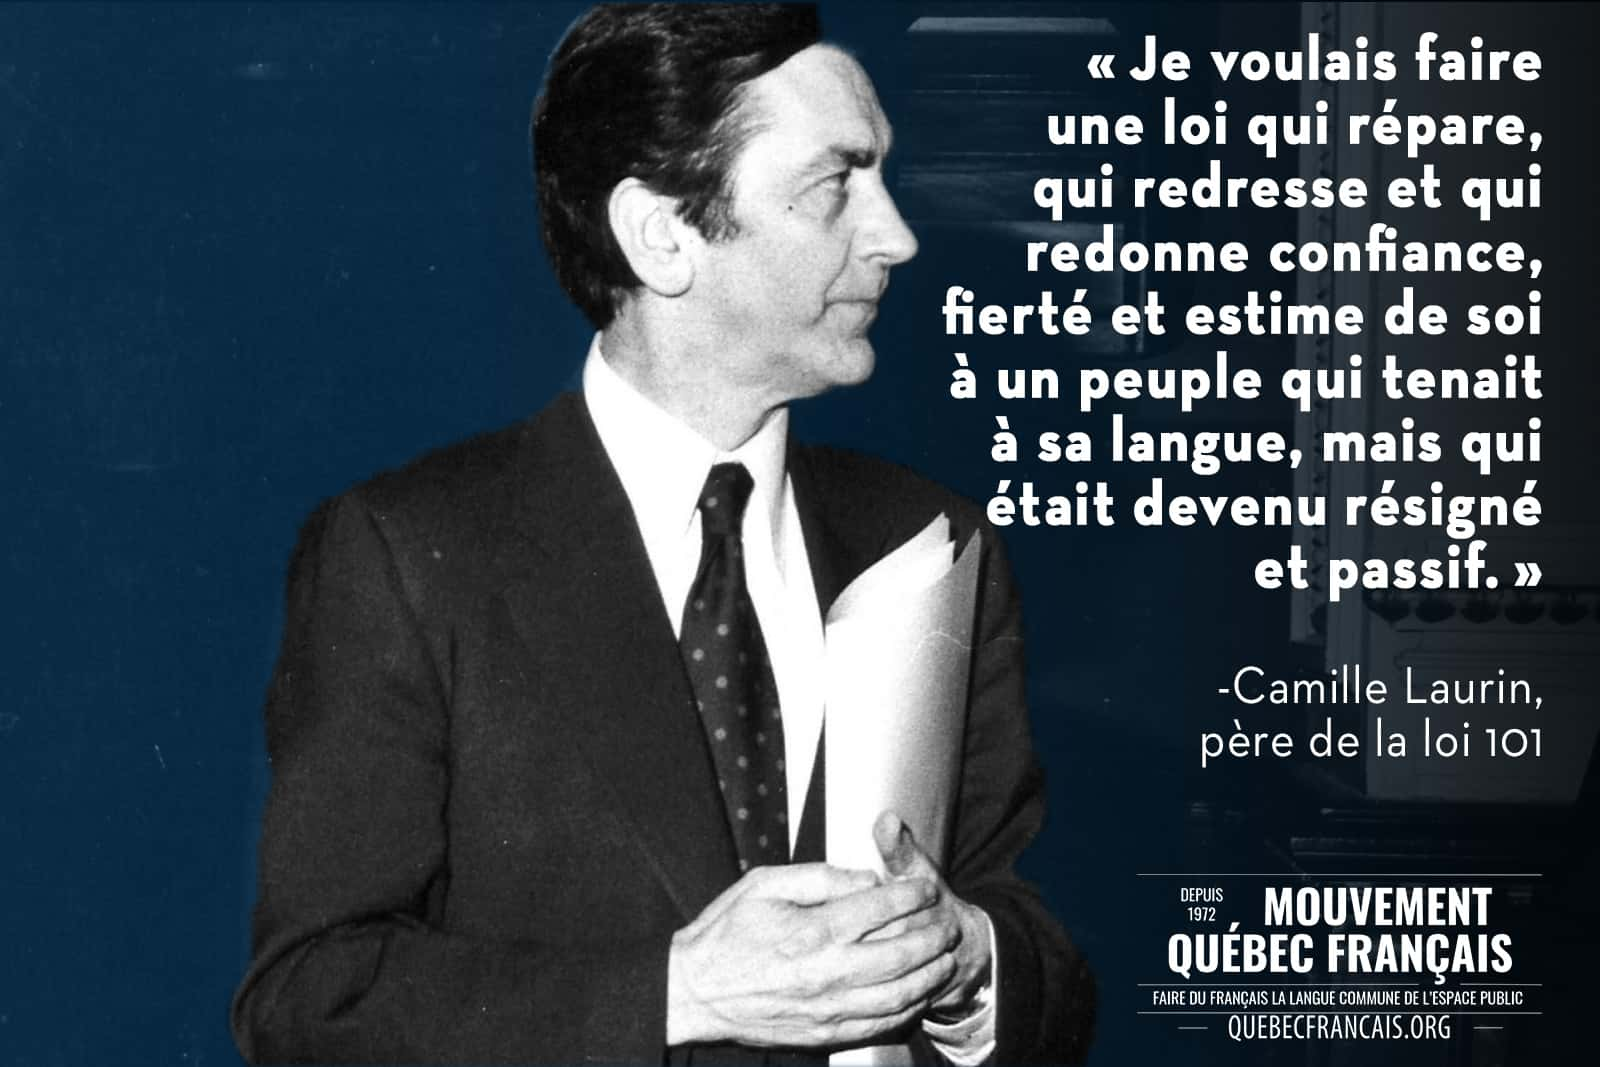 Camille Laurin citation 1